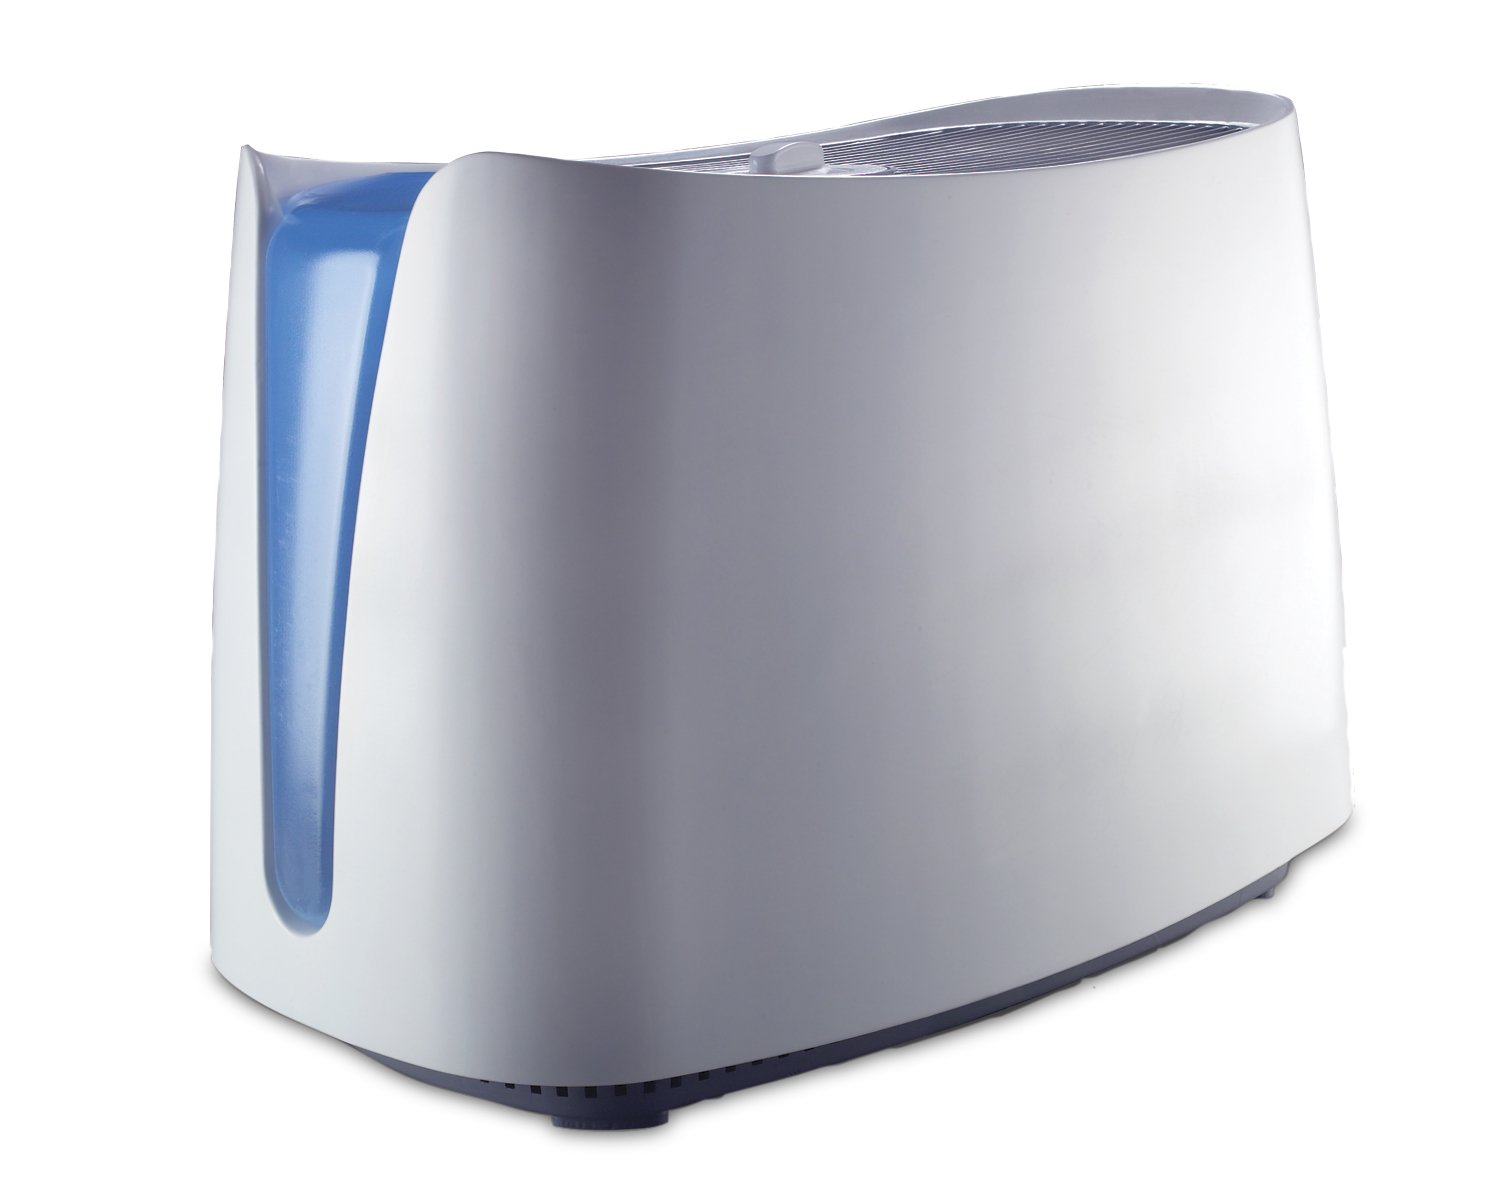 Honeywell HCM350W Germ Free Cool Mist Humidifier White by Honeywell